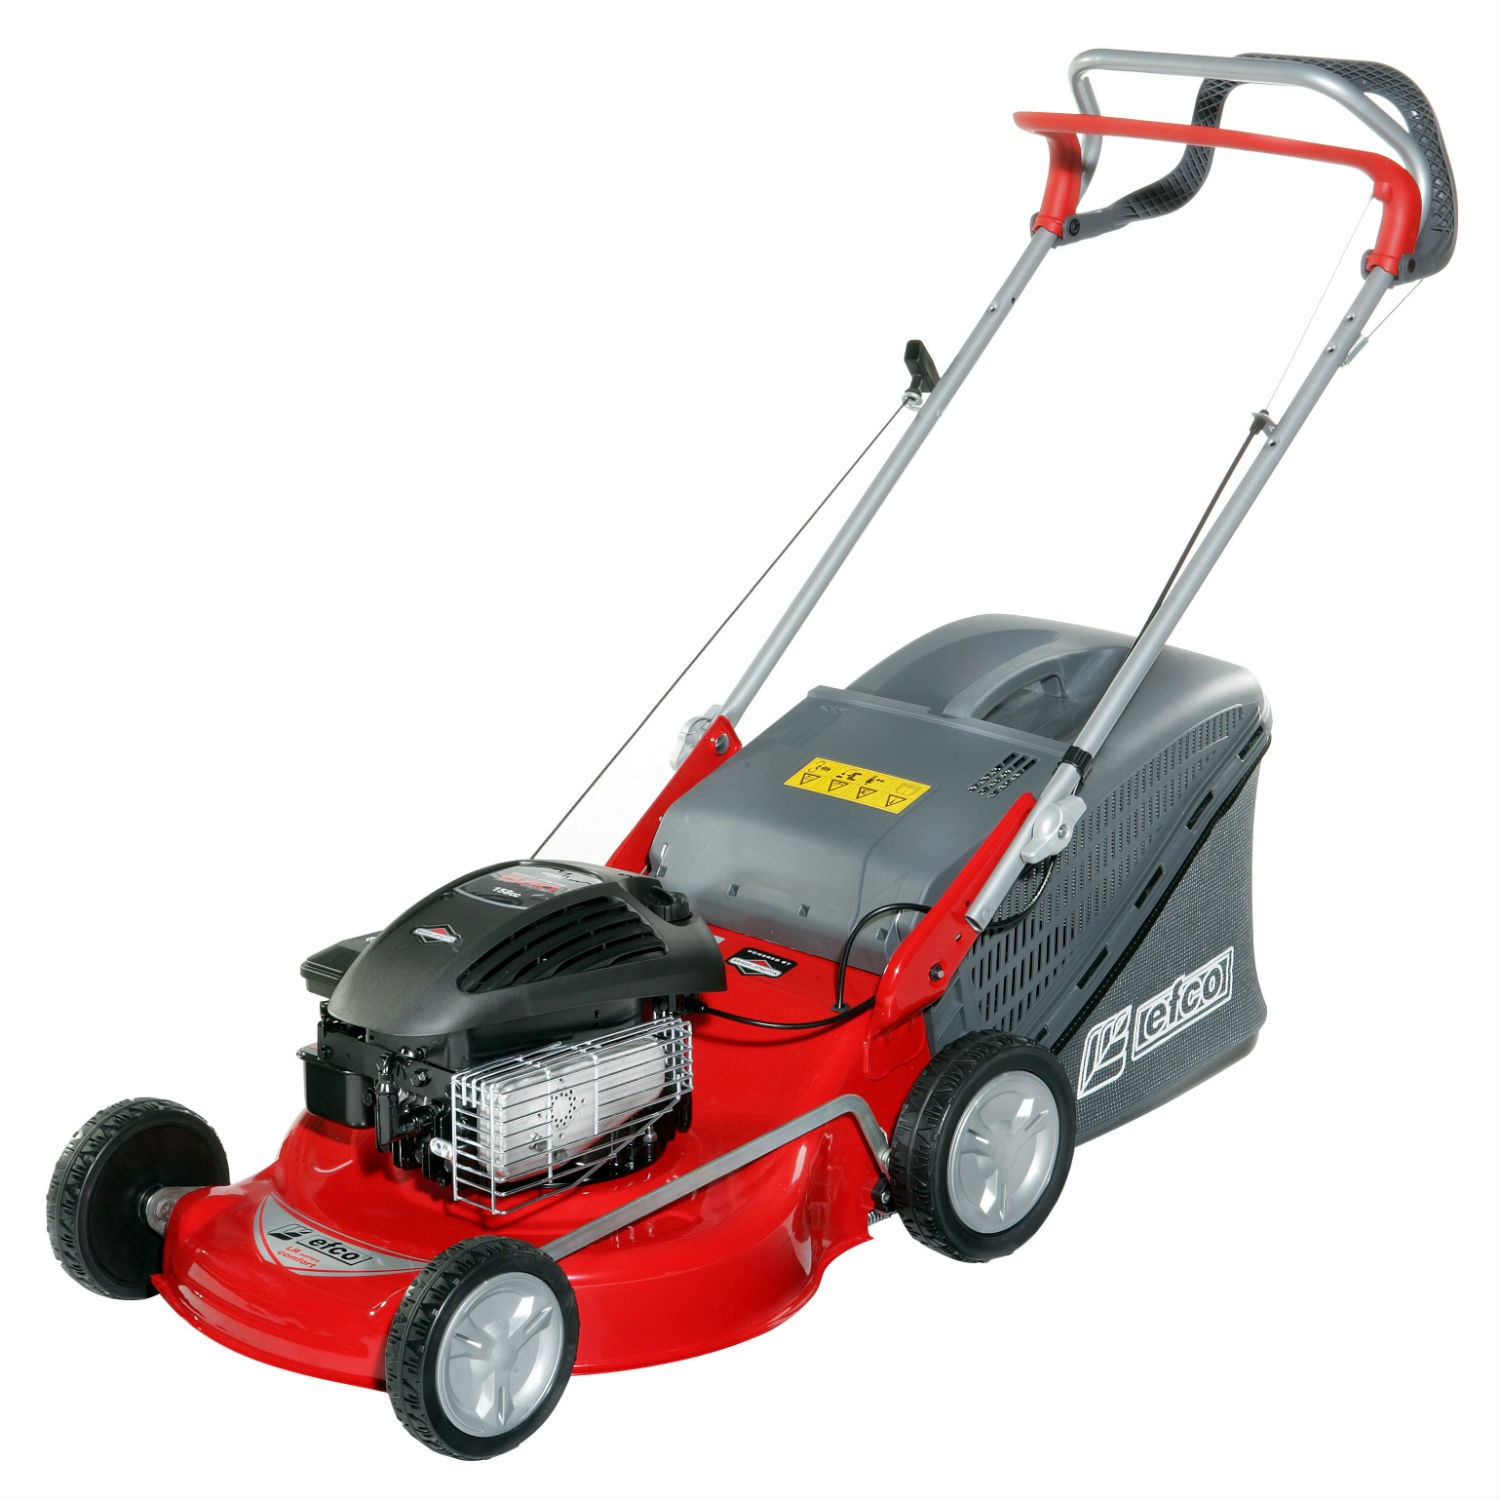 Efco LR48-TBQ Comfort 3-in-1 Petrol Self-Propelled Lawn Mower